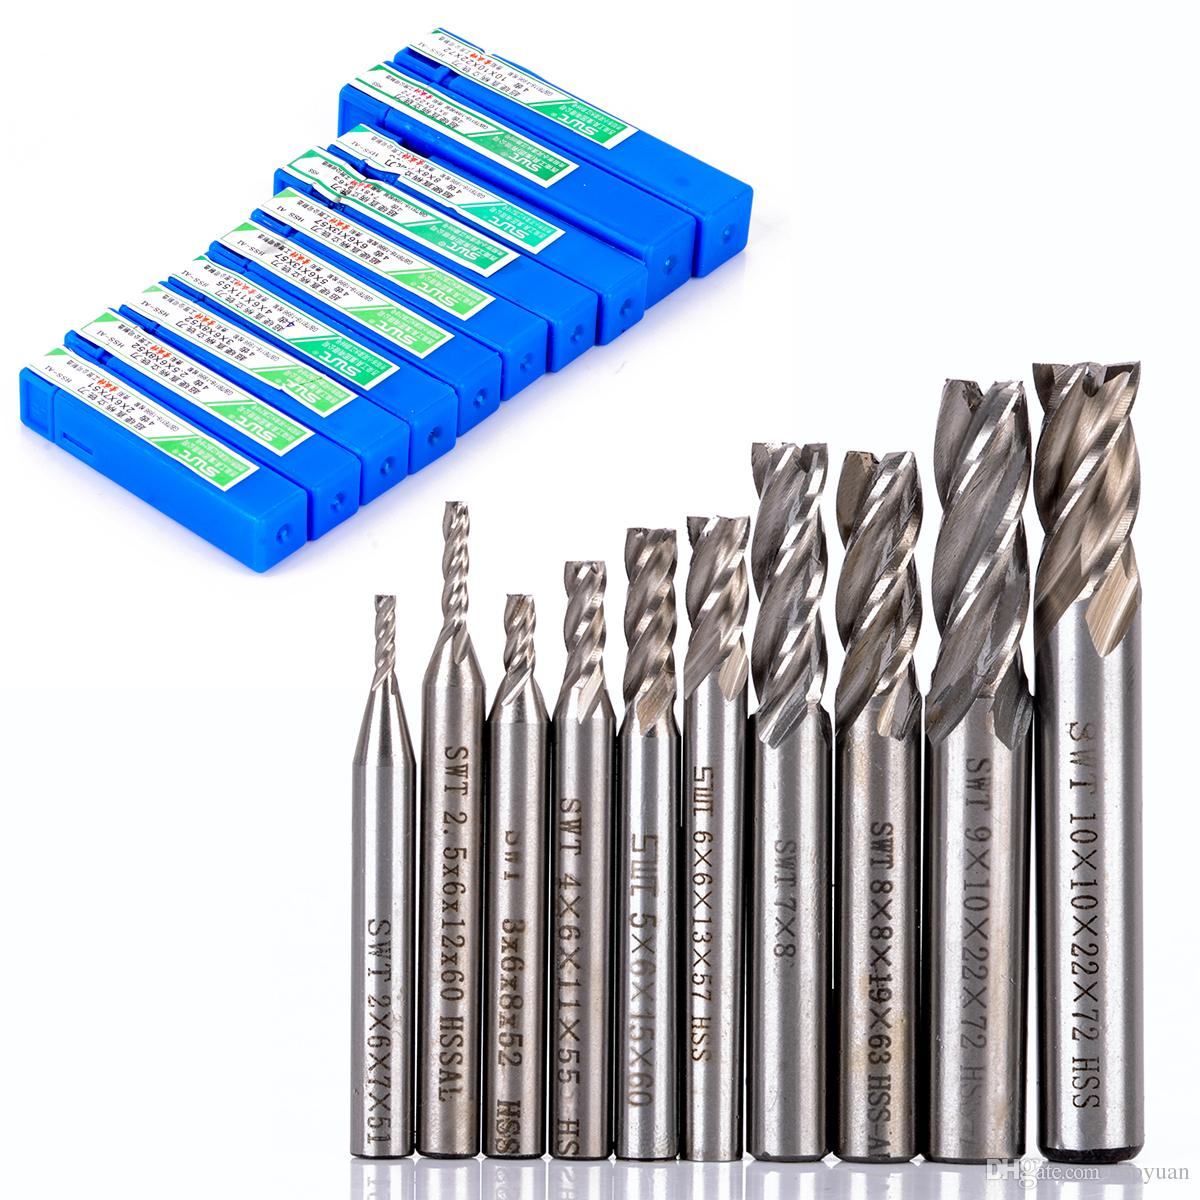 10pcs/set 2-10mm End Mill Set HSS 4 Blades Flute Milling Cutter Router Bit CNC Mill Drill Bit For Power Tools